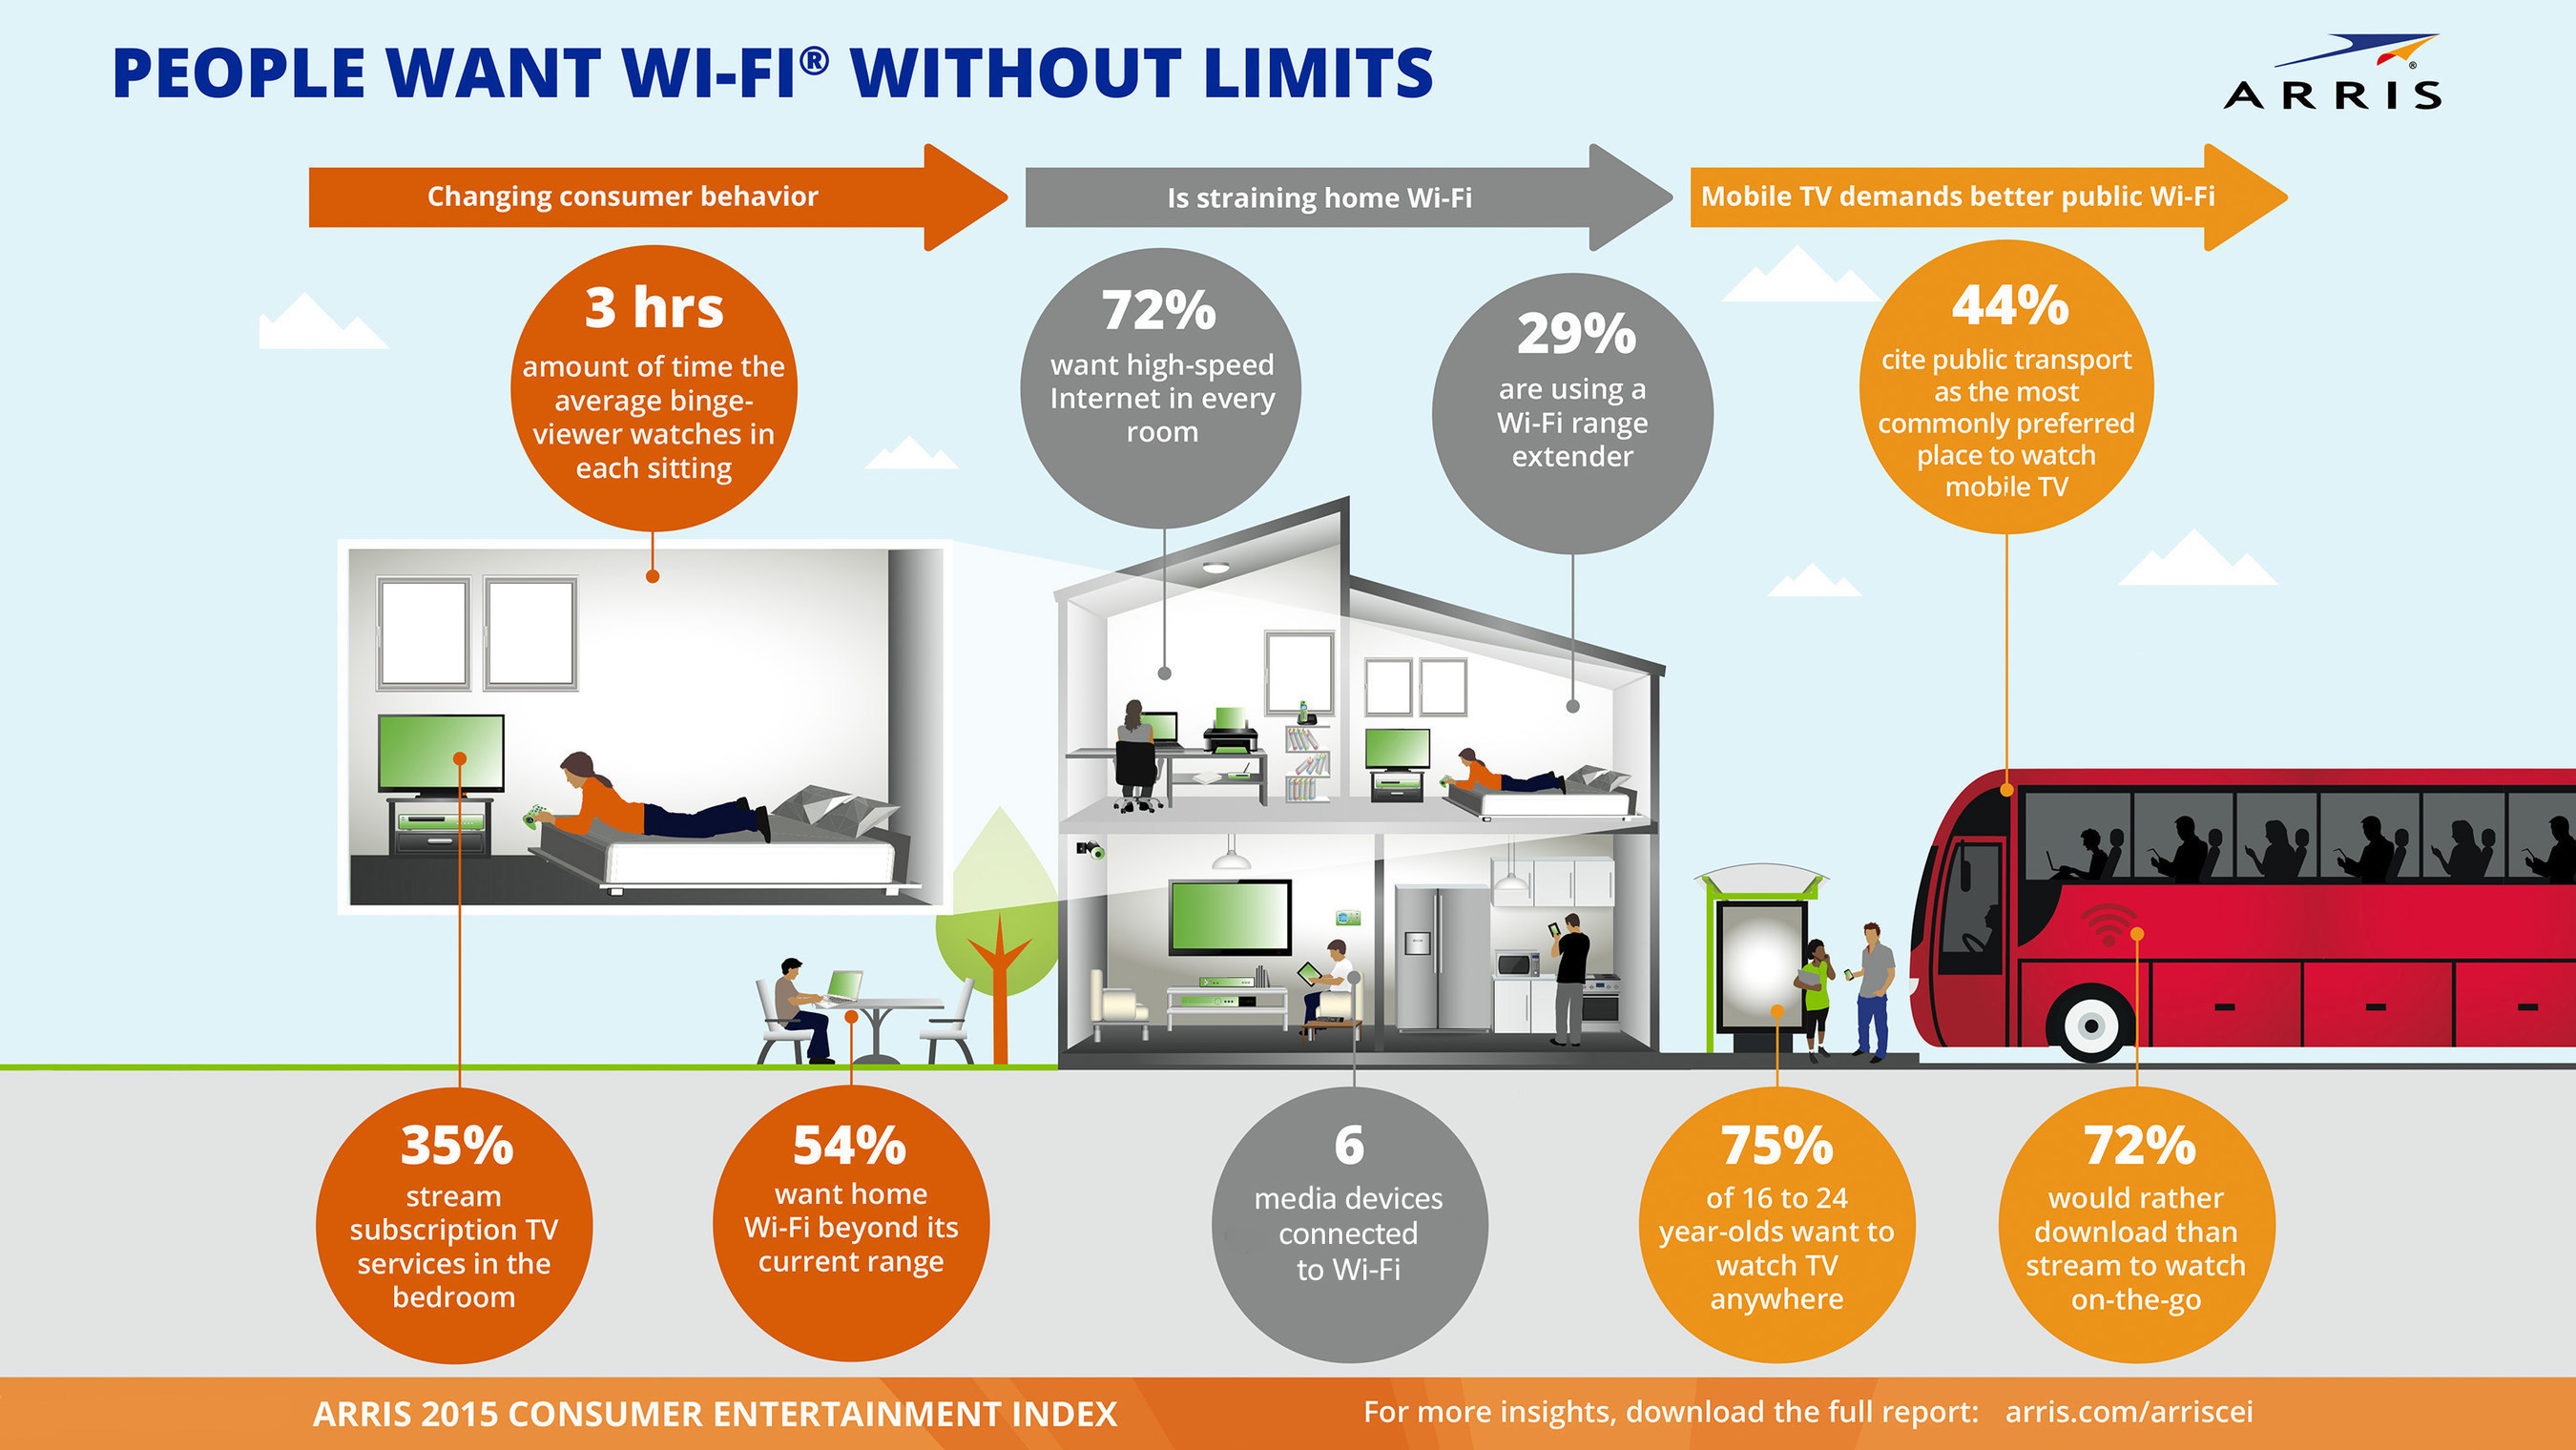 ARRIS 2015 Consumer Entertainment Index: People Want Wi-Fi Without Limits arris.com/arriscei